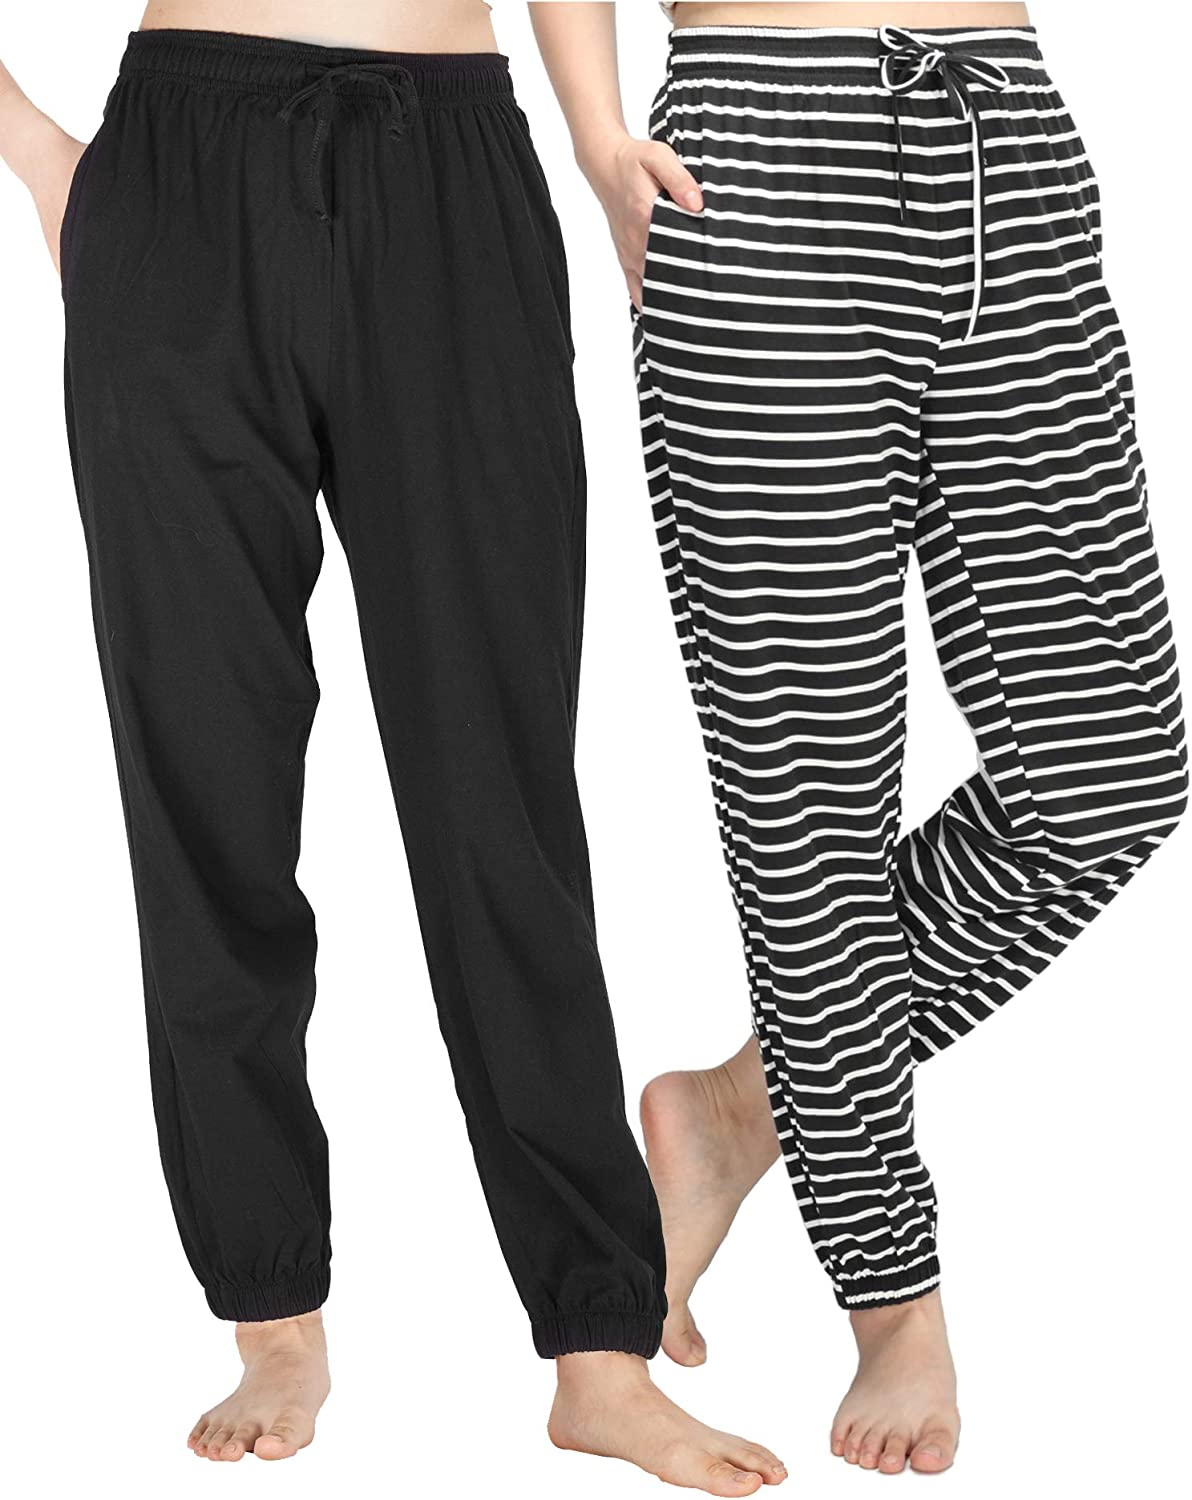 WEWINK CUKOO Pajama Bottoms Women Cotton Stretchy Sleep Lounge Pants with Pockets